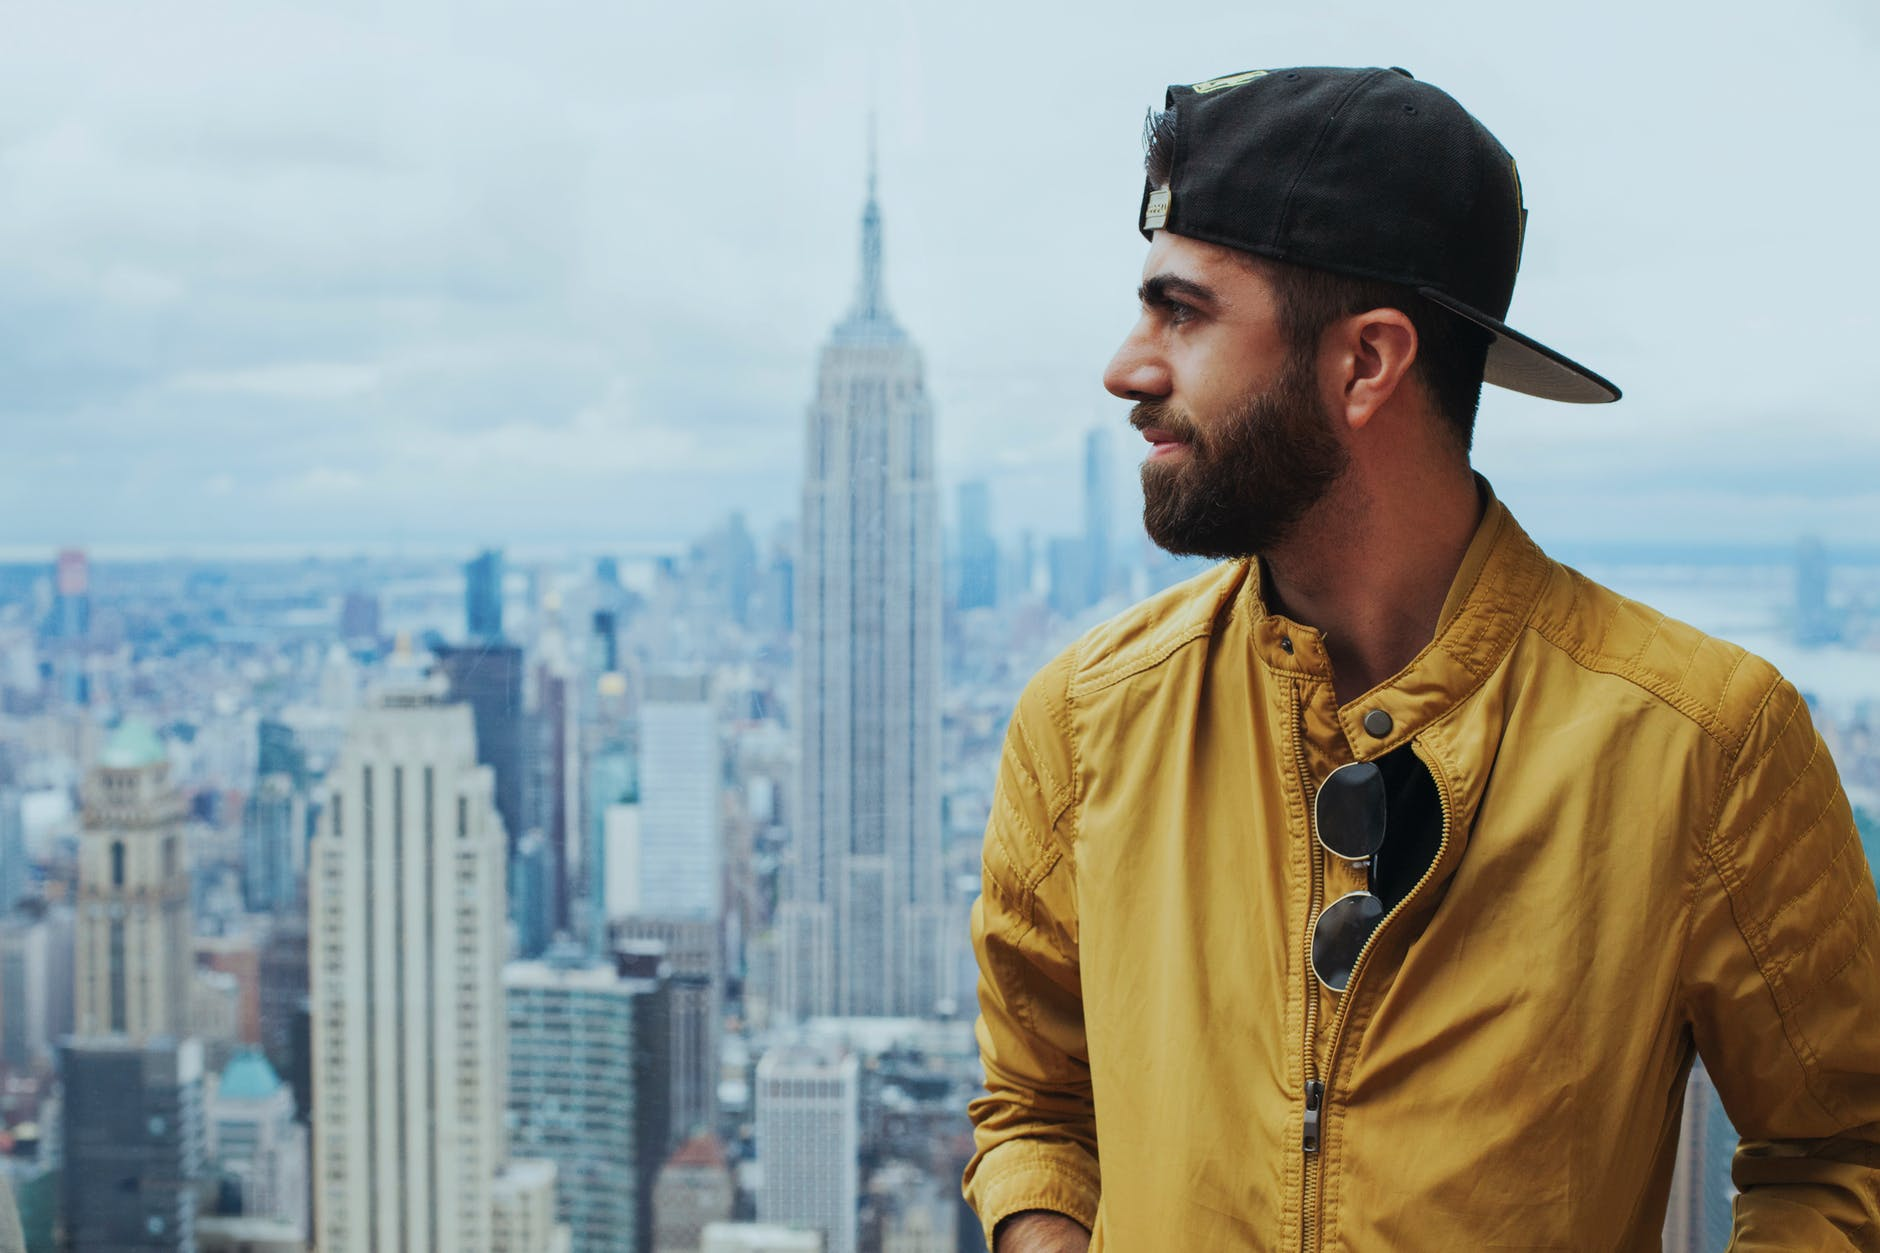 expat life in NYC